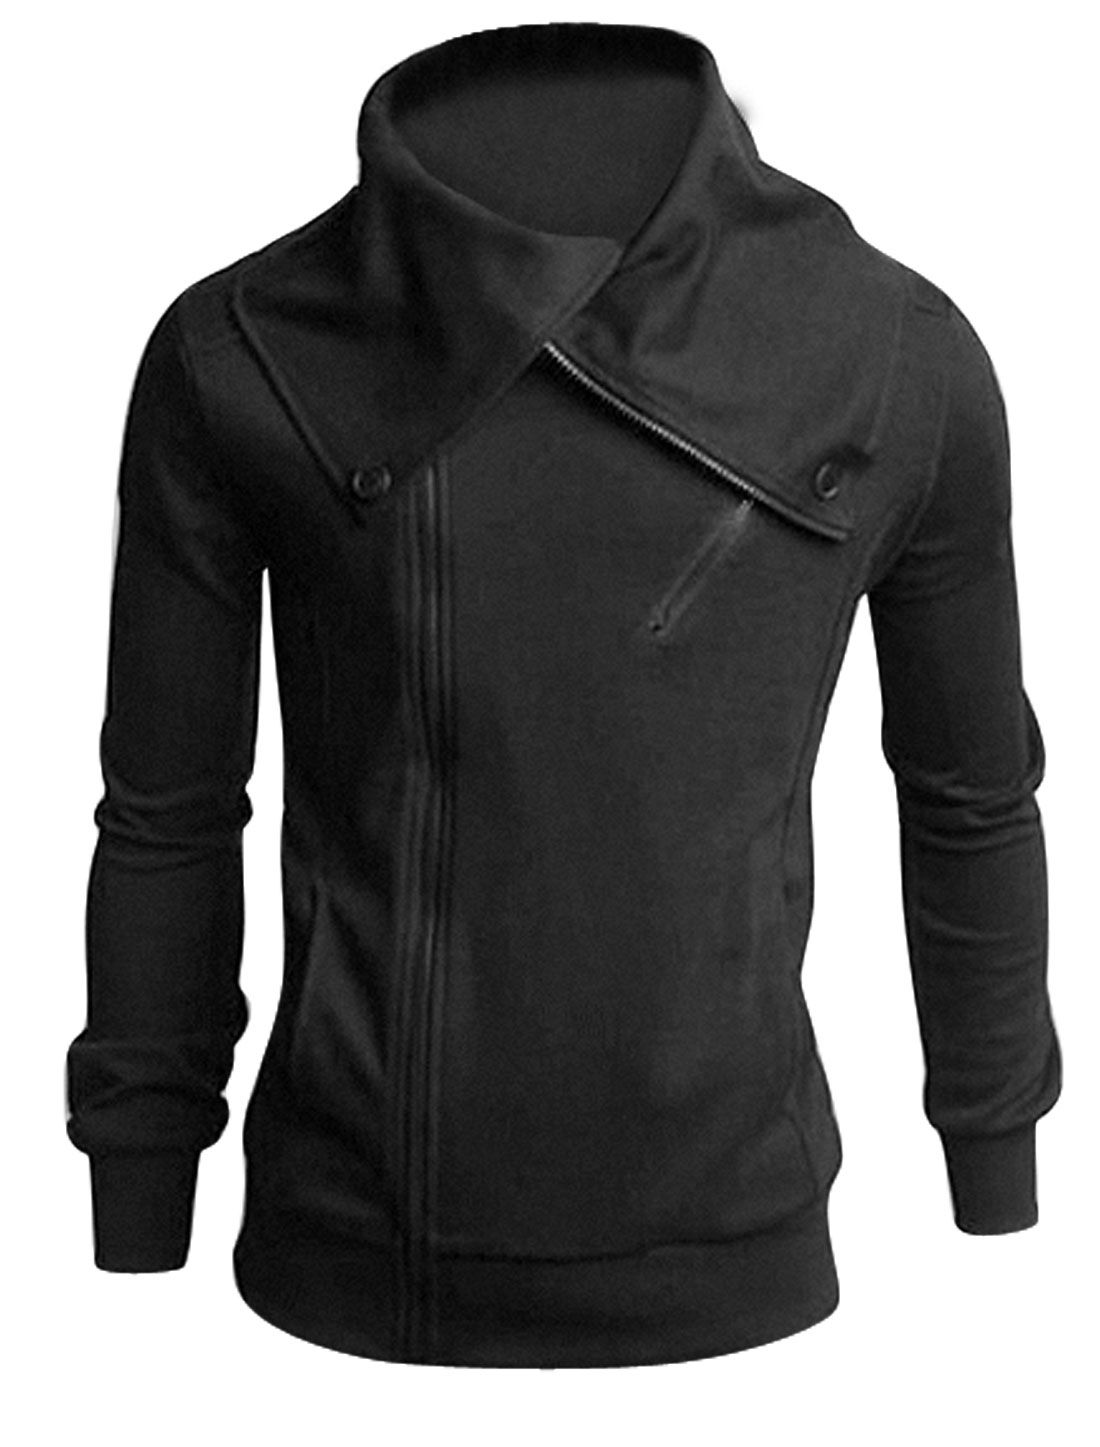 Men Long Sleeves Zip Up Zip Decor Trendy Jackets Dark Gray M